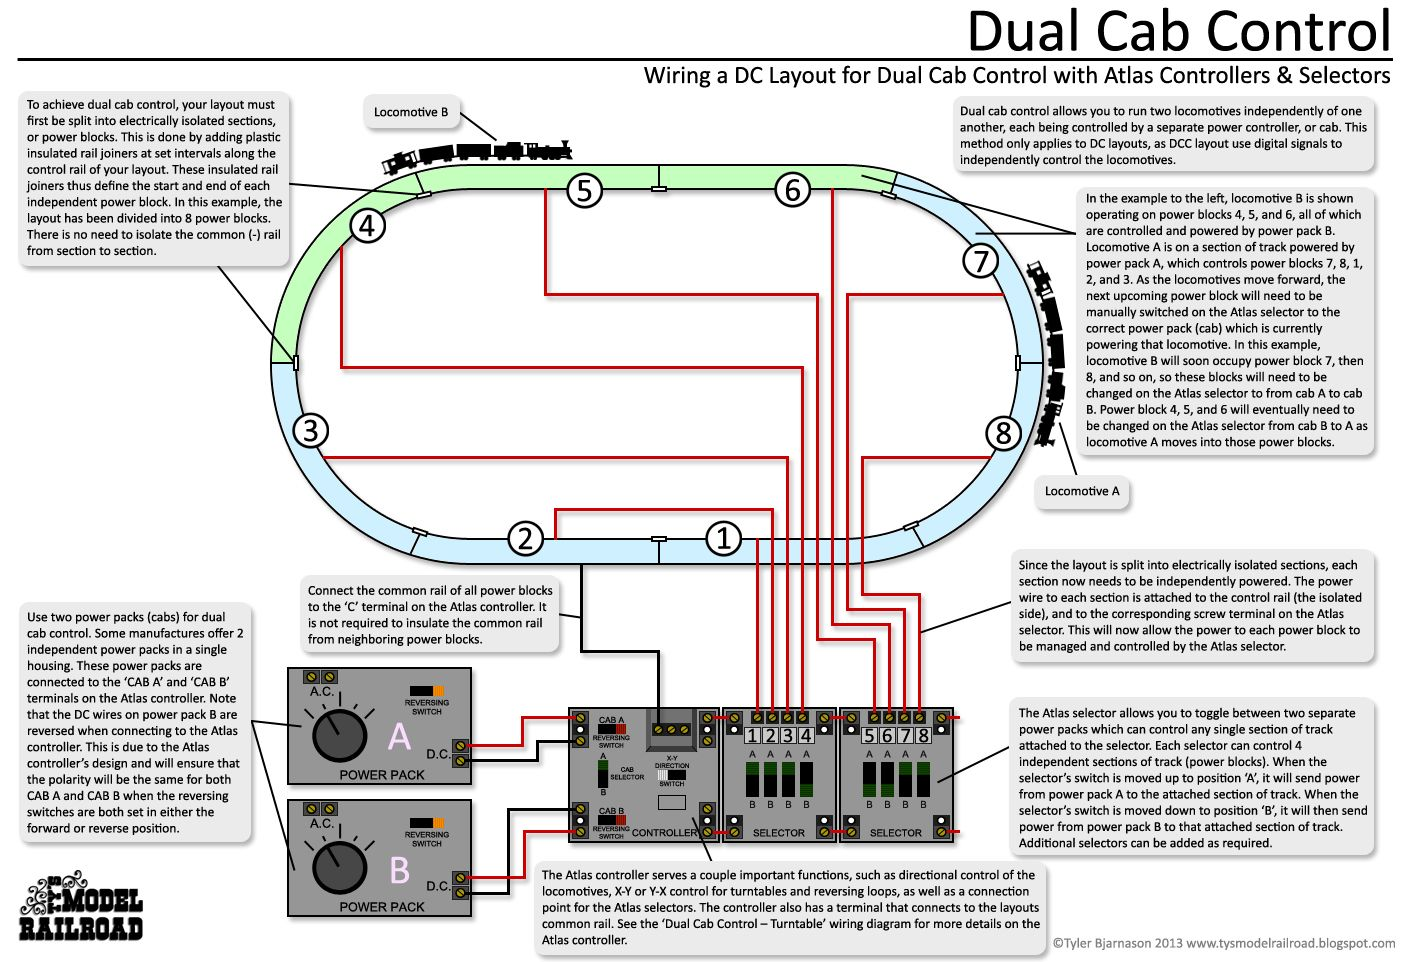 N Scale Dcc Wiring Diagrams | Wiring Liry on dcc bus wiring, dcc wiring for ho trains, dcc block diagram, dcc wiring tips, dcc wiring for switch machines, dcc wiring ground throws, dcc wiring model railway layouts, pa crossover diagrams, dcc wiring examples, dcc wiring guide, dcc wiring basics,